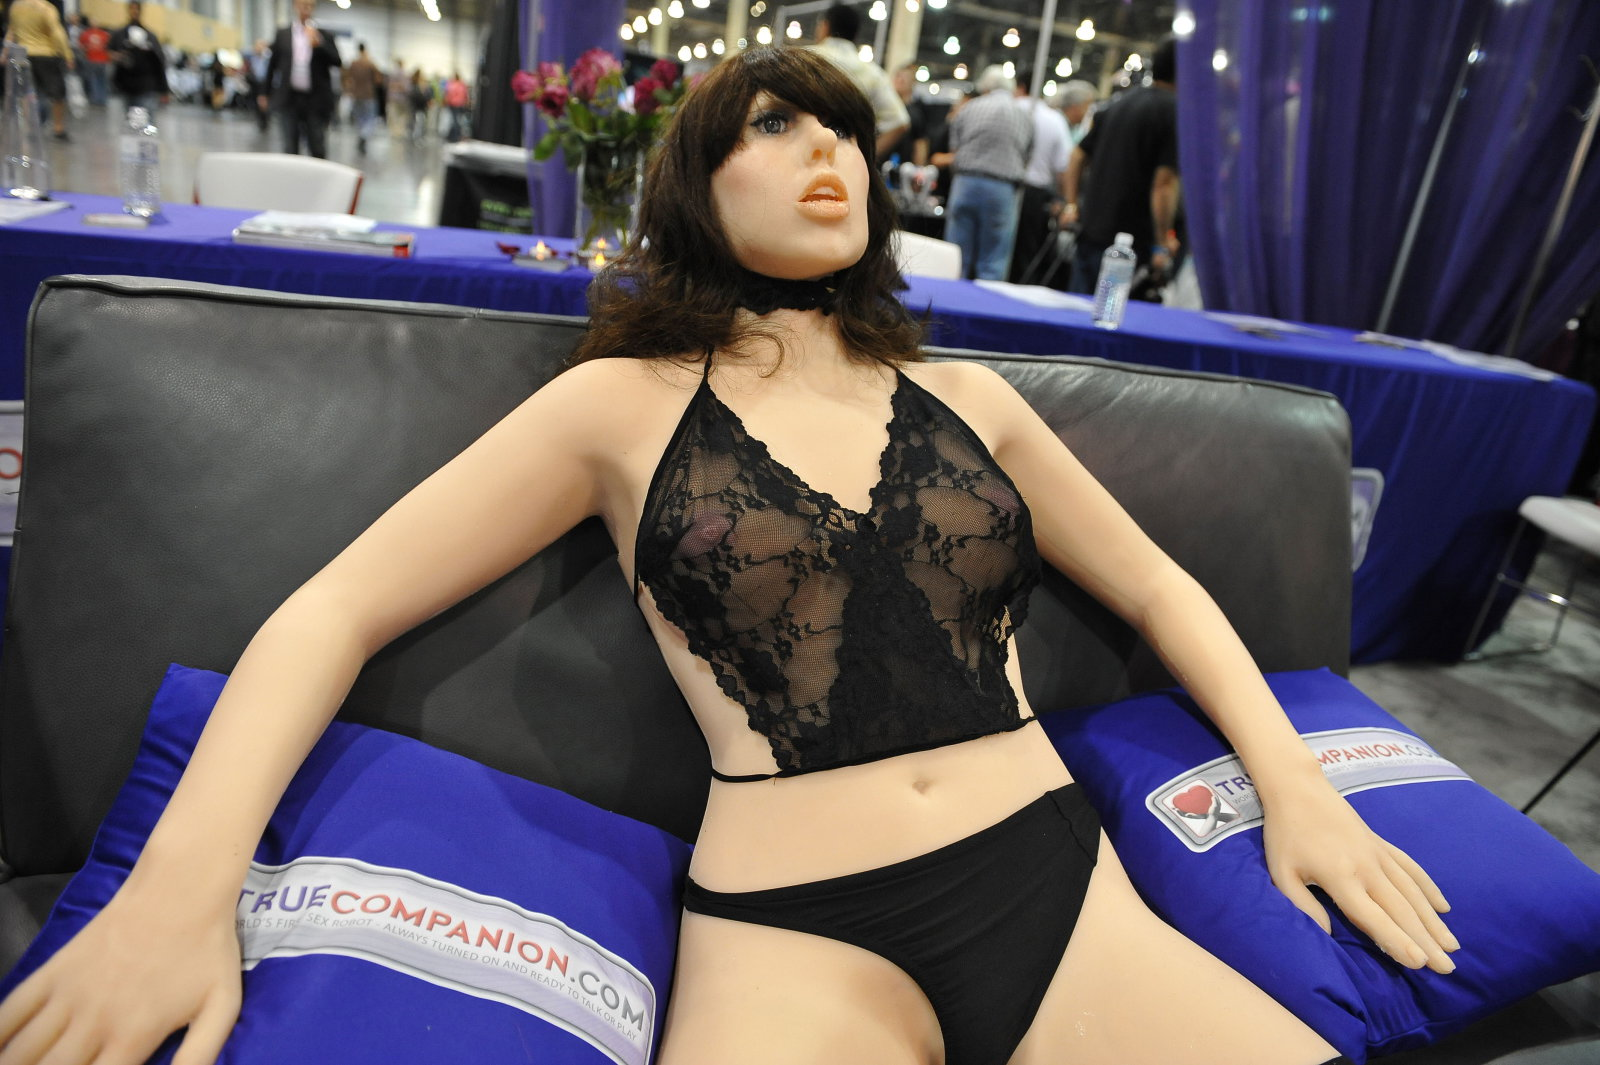 Robotic sex partners will be commonplace